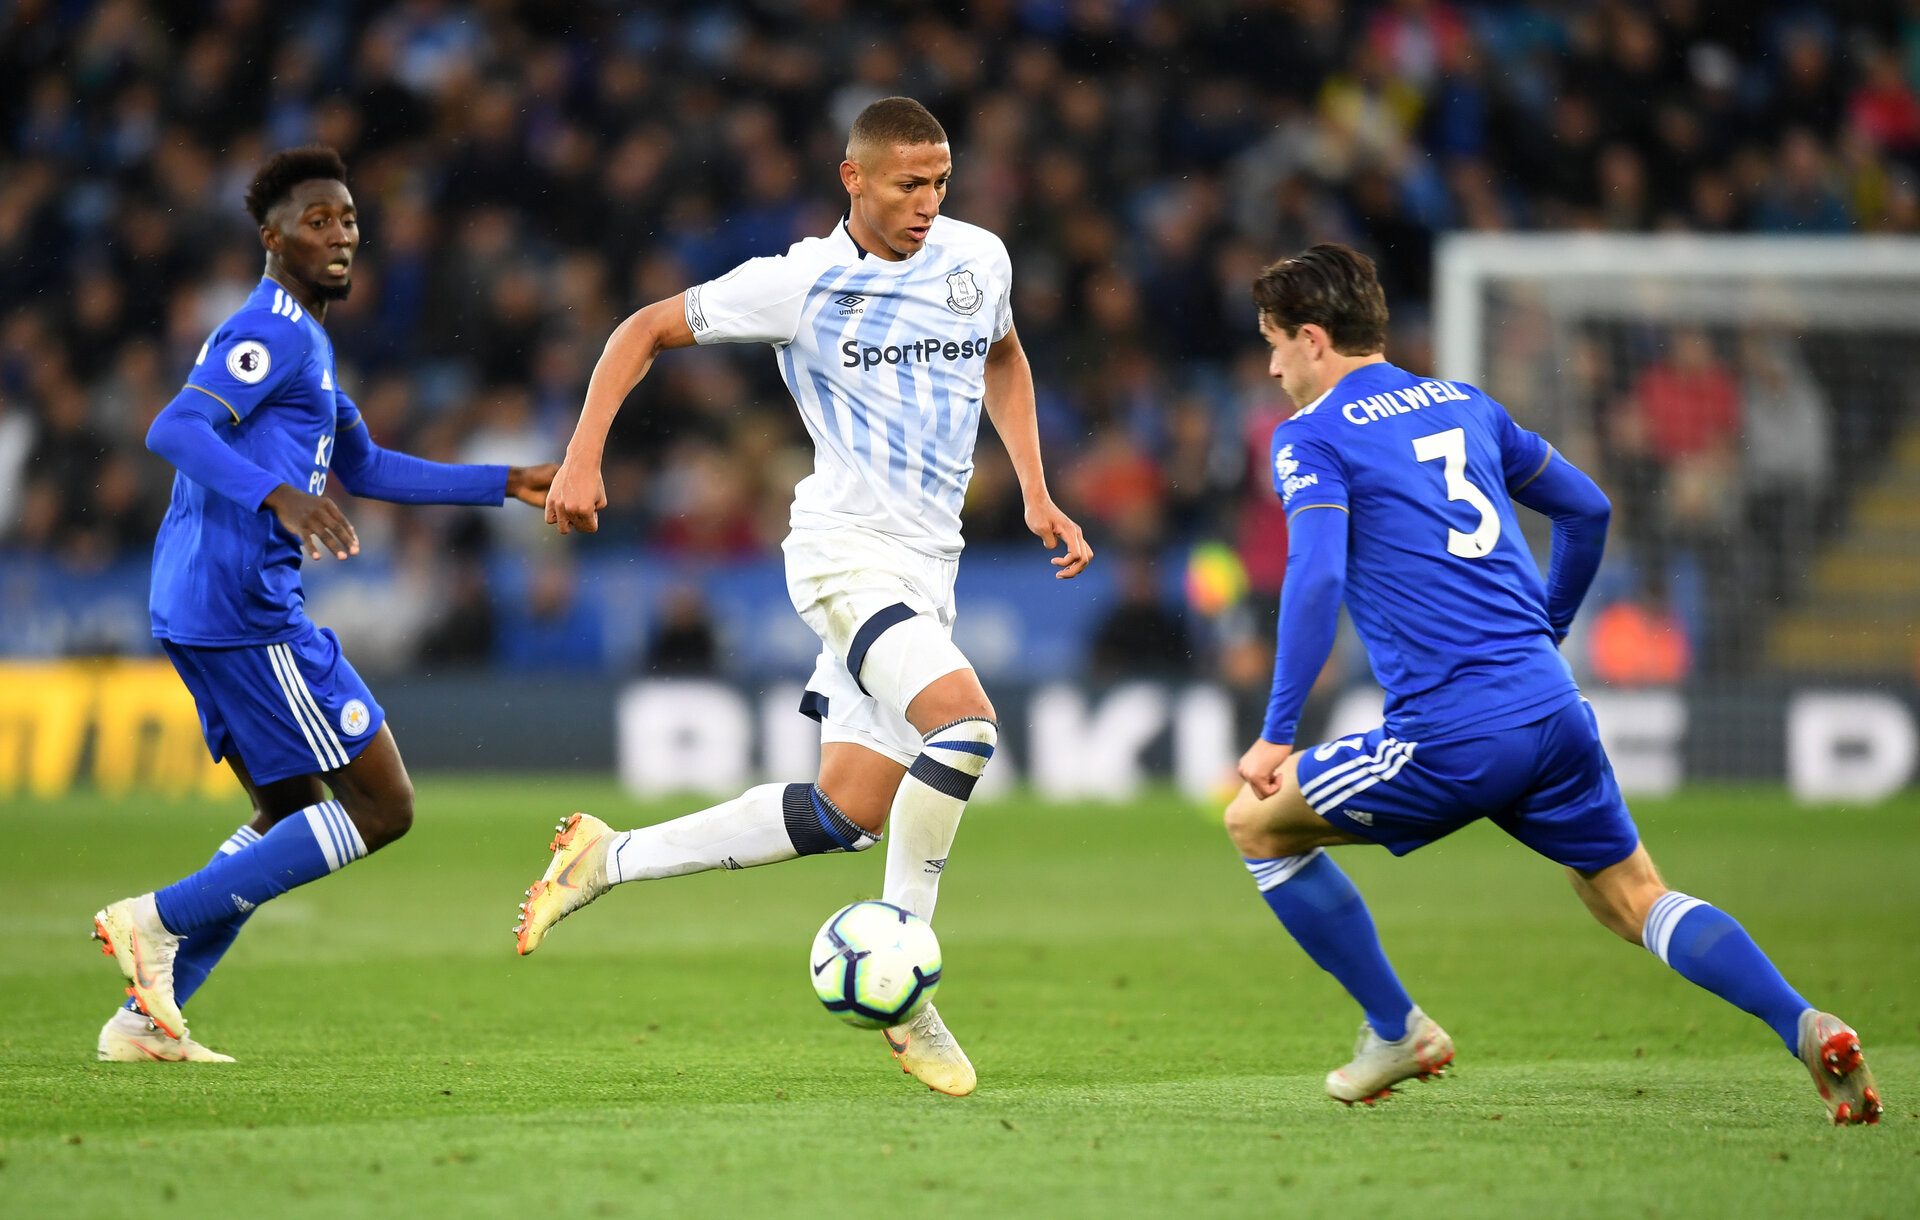 LEICESTER, ENGLAND - OCTOBER 06:  Richarlison of Everton is challenged by Ben Chilwell of Leicester City during the Premier League match between Leicester City and Everton FC at The King Power Stadium on October 6, 2018 in Leicester, United Kingdom.  (Photo by Michael Regan/Getty Images)